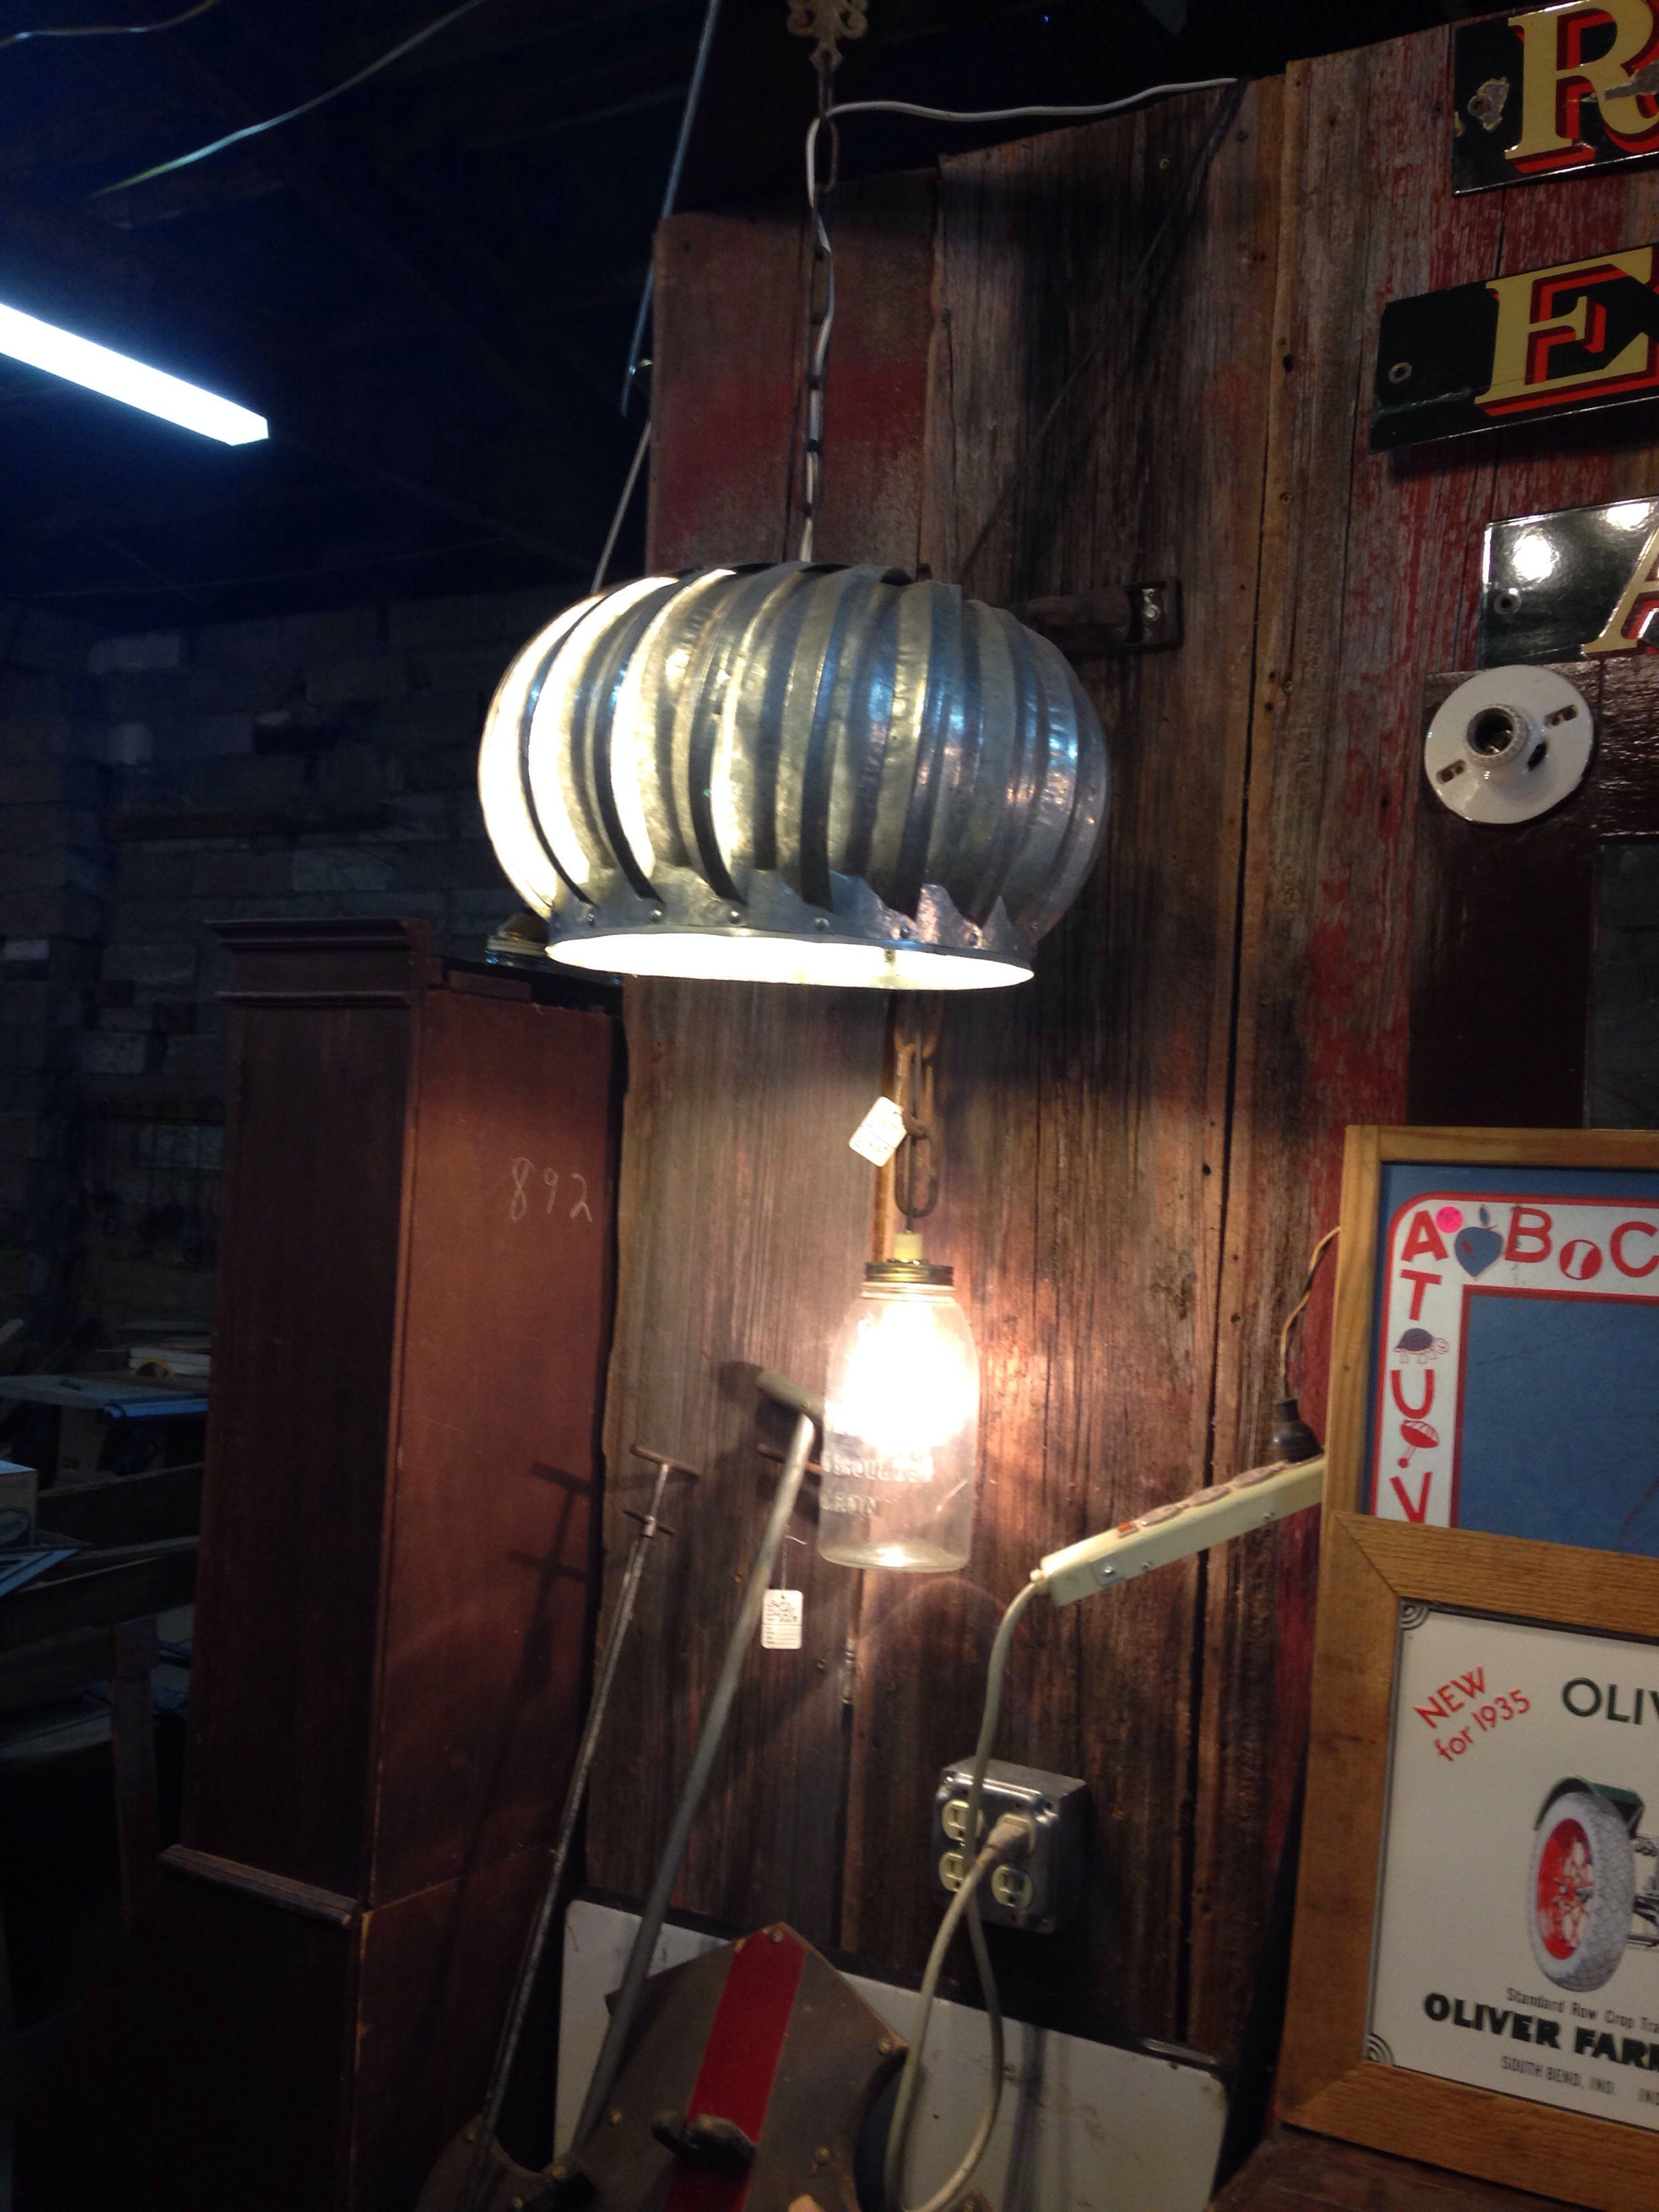 Repurpose An Old Roof Turbine Vent As A Light Fixture Glass Light Fixture Light Fixtures Vintage Light Fixtures